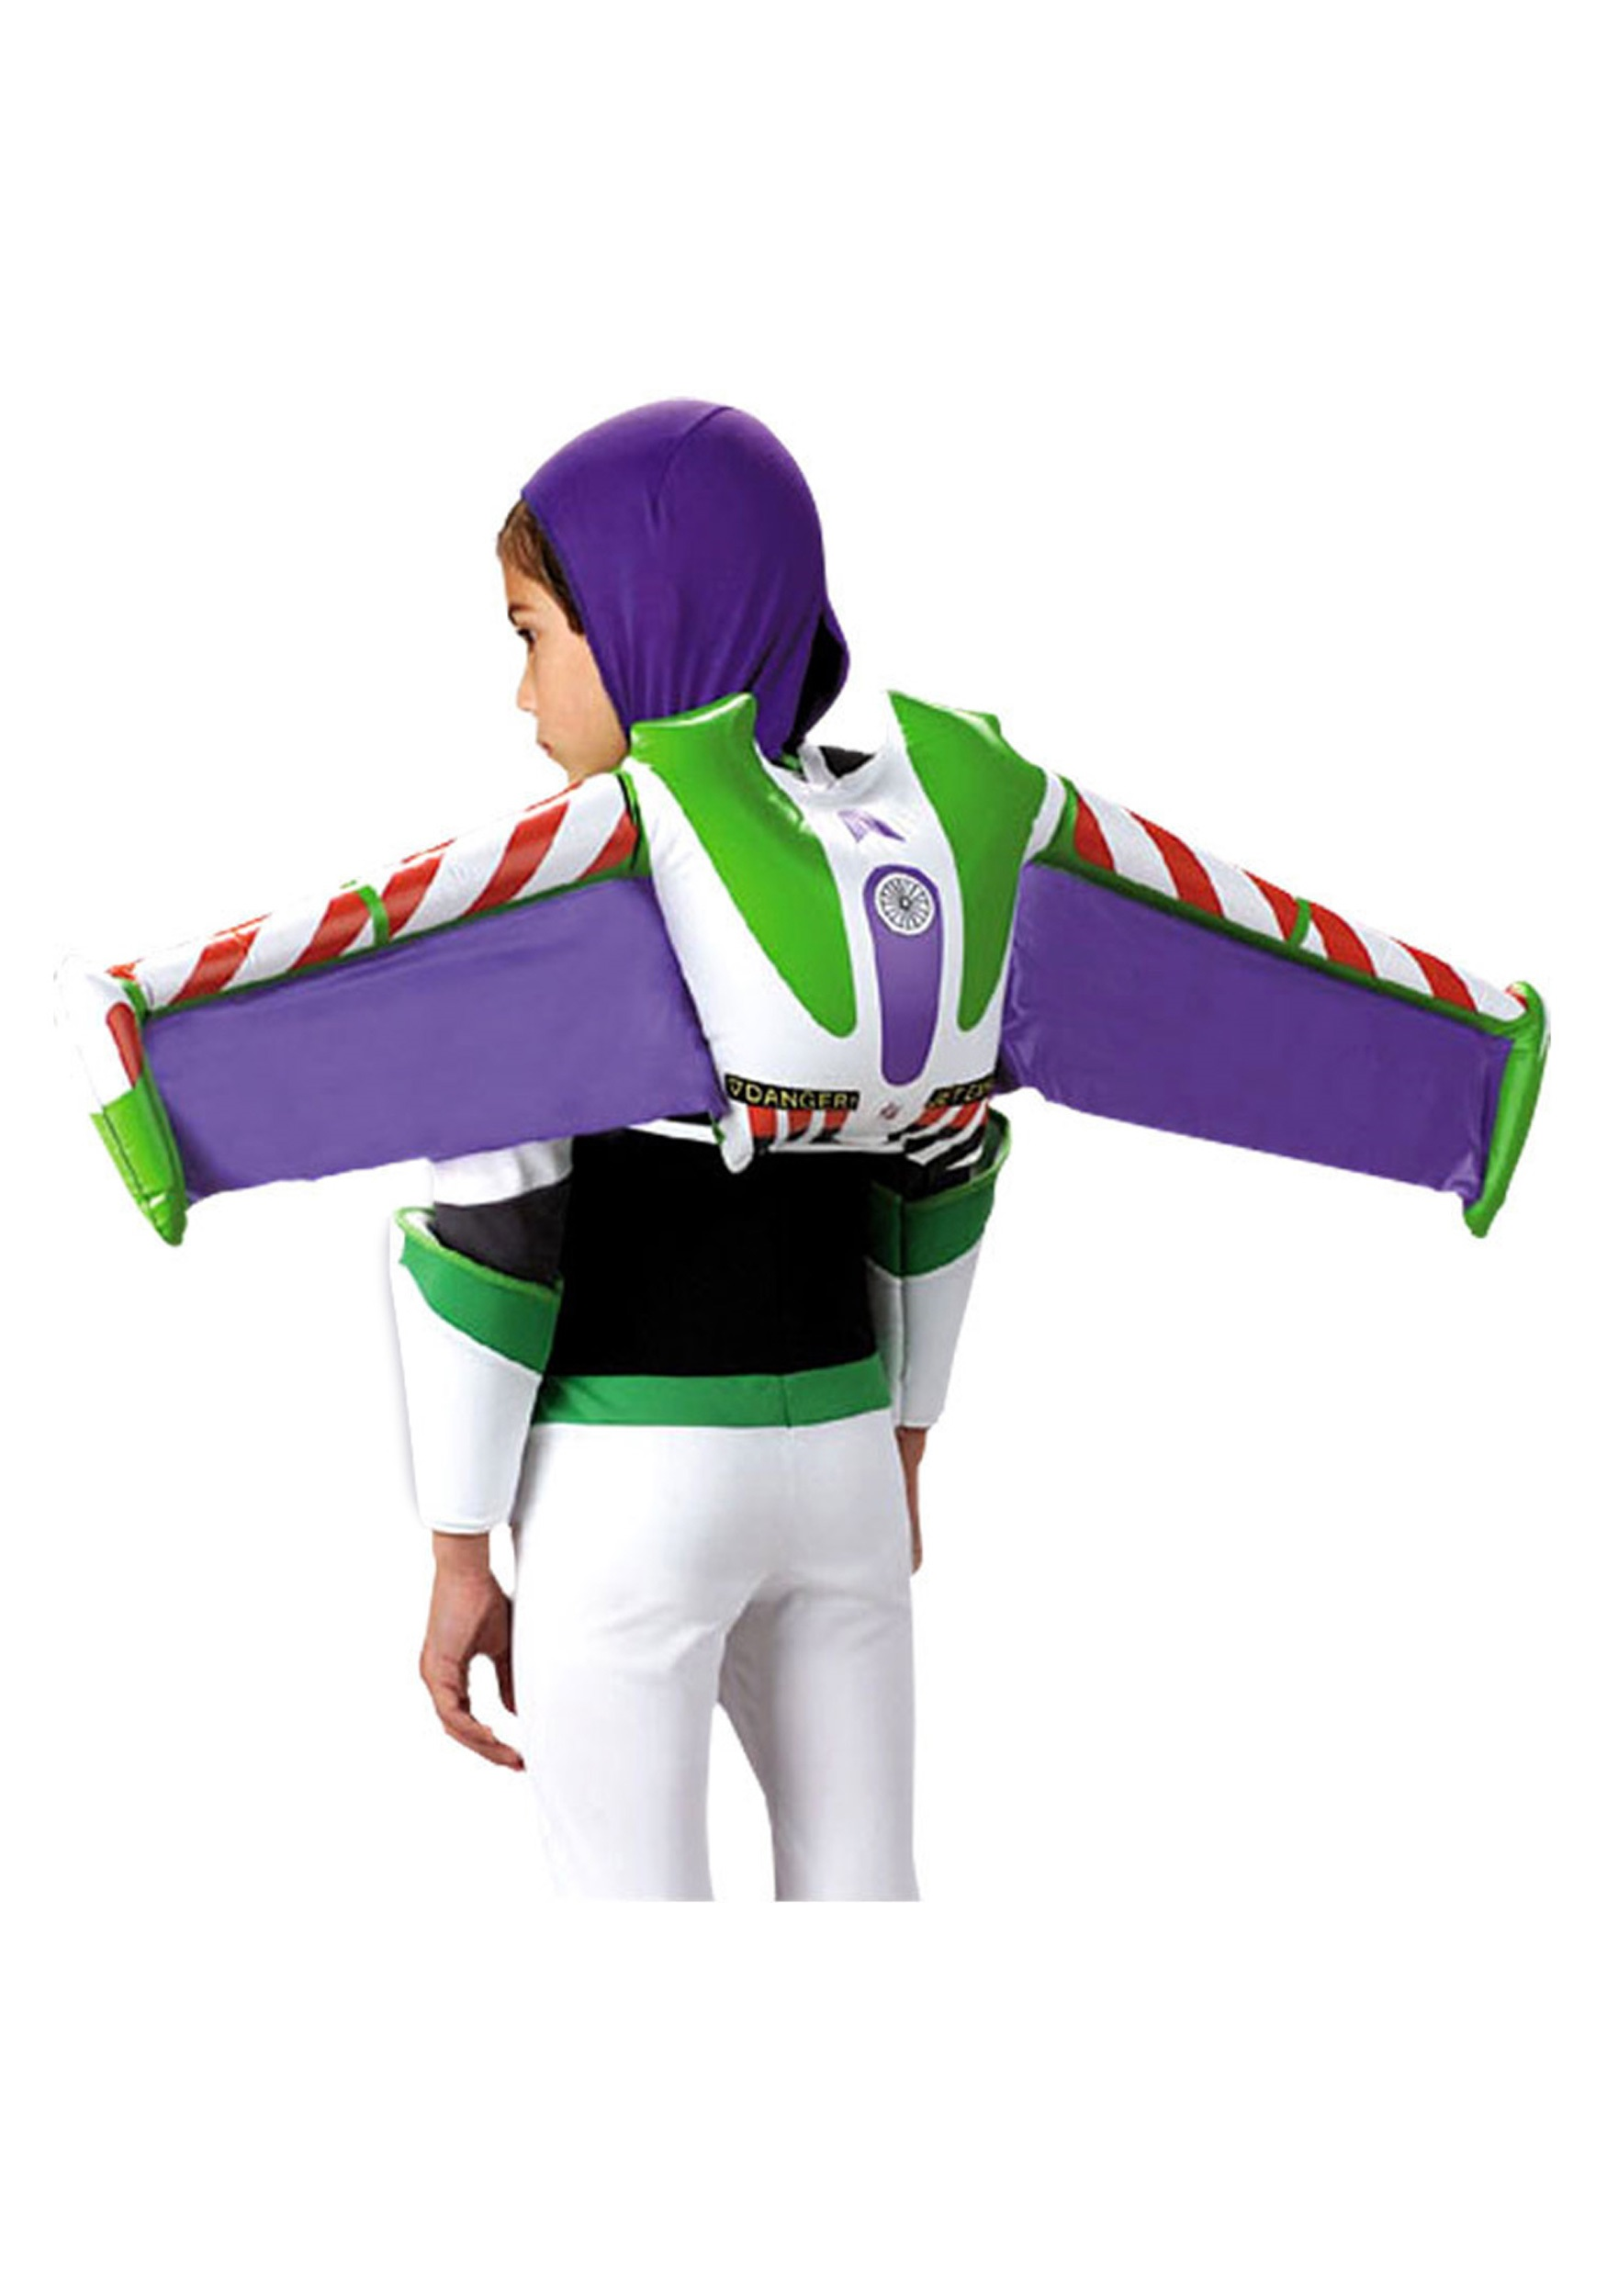 Kids Buzz Lightyear Jetpack  sc 1 st  Halloween Costume & Kids Buzz Lightyear Jetpack - Toy Story Costume Disney Accessories